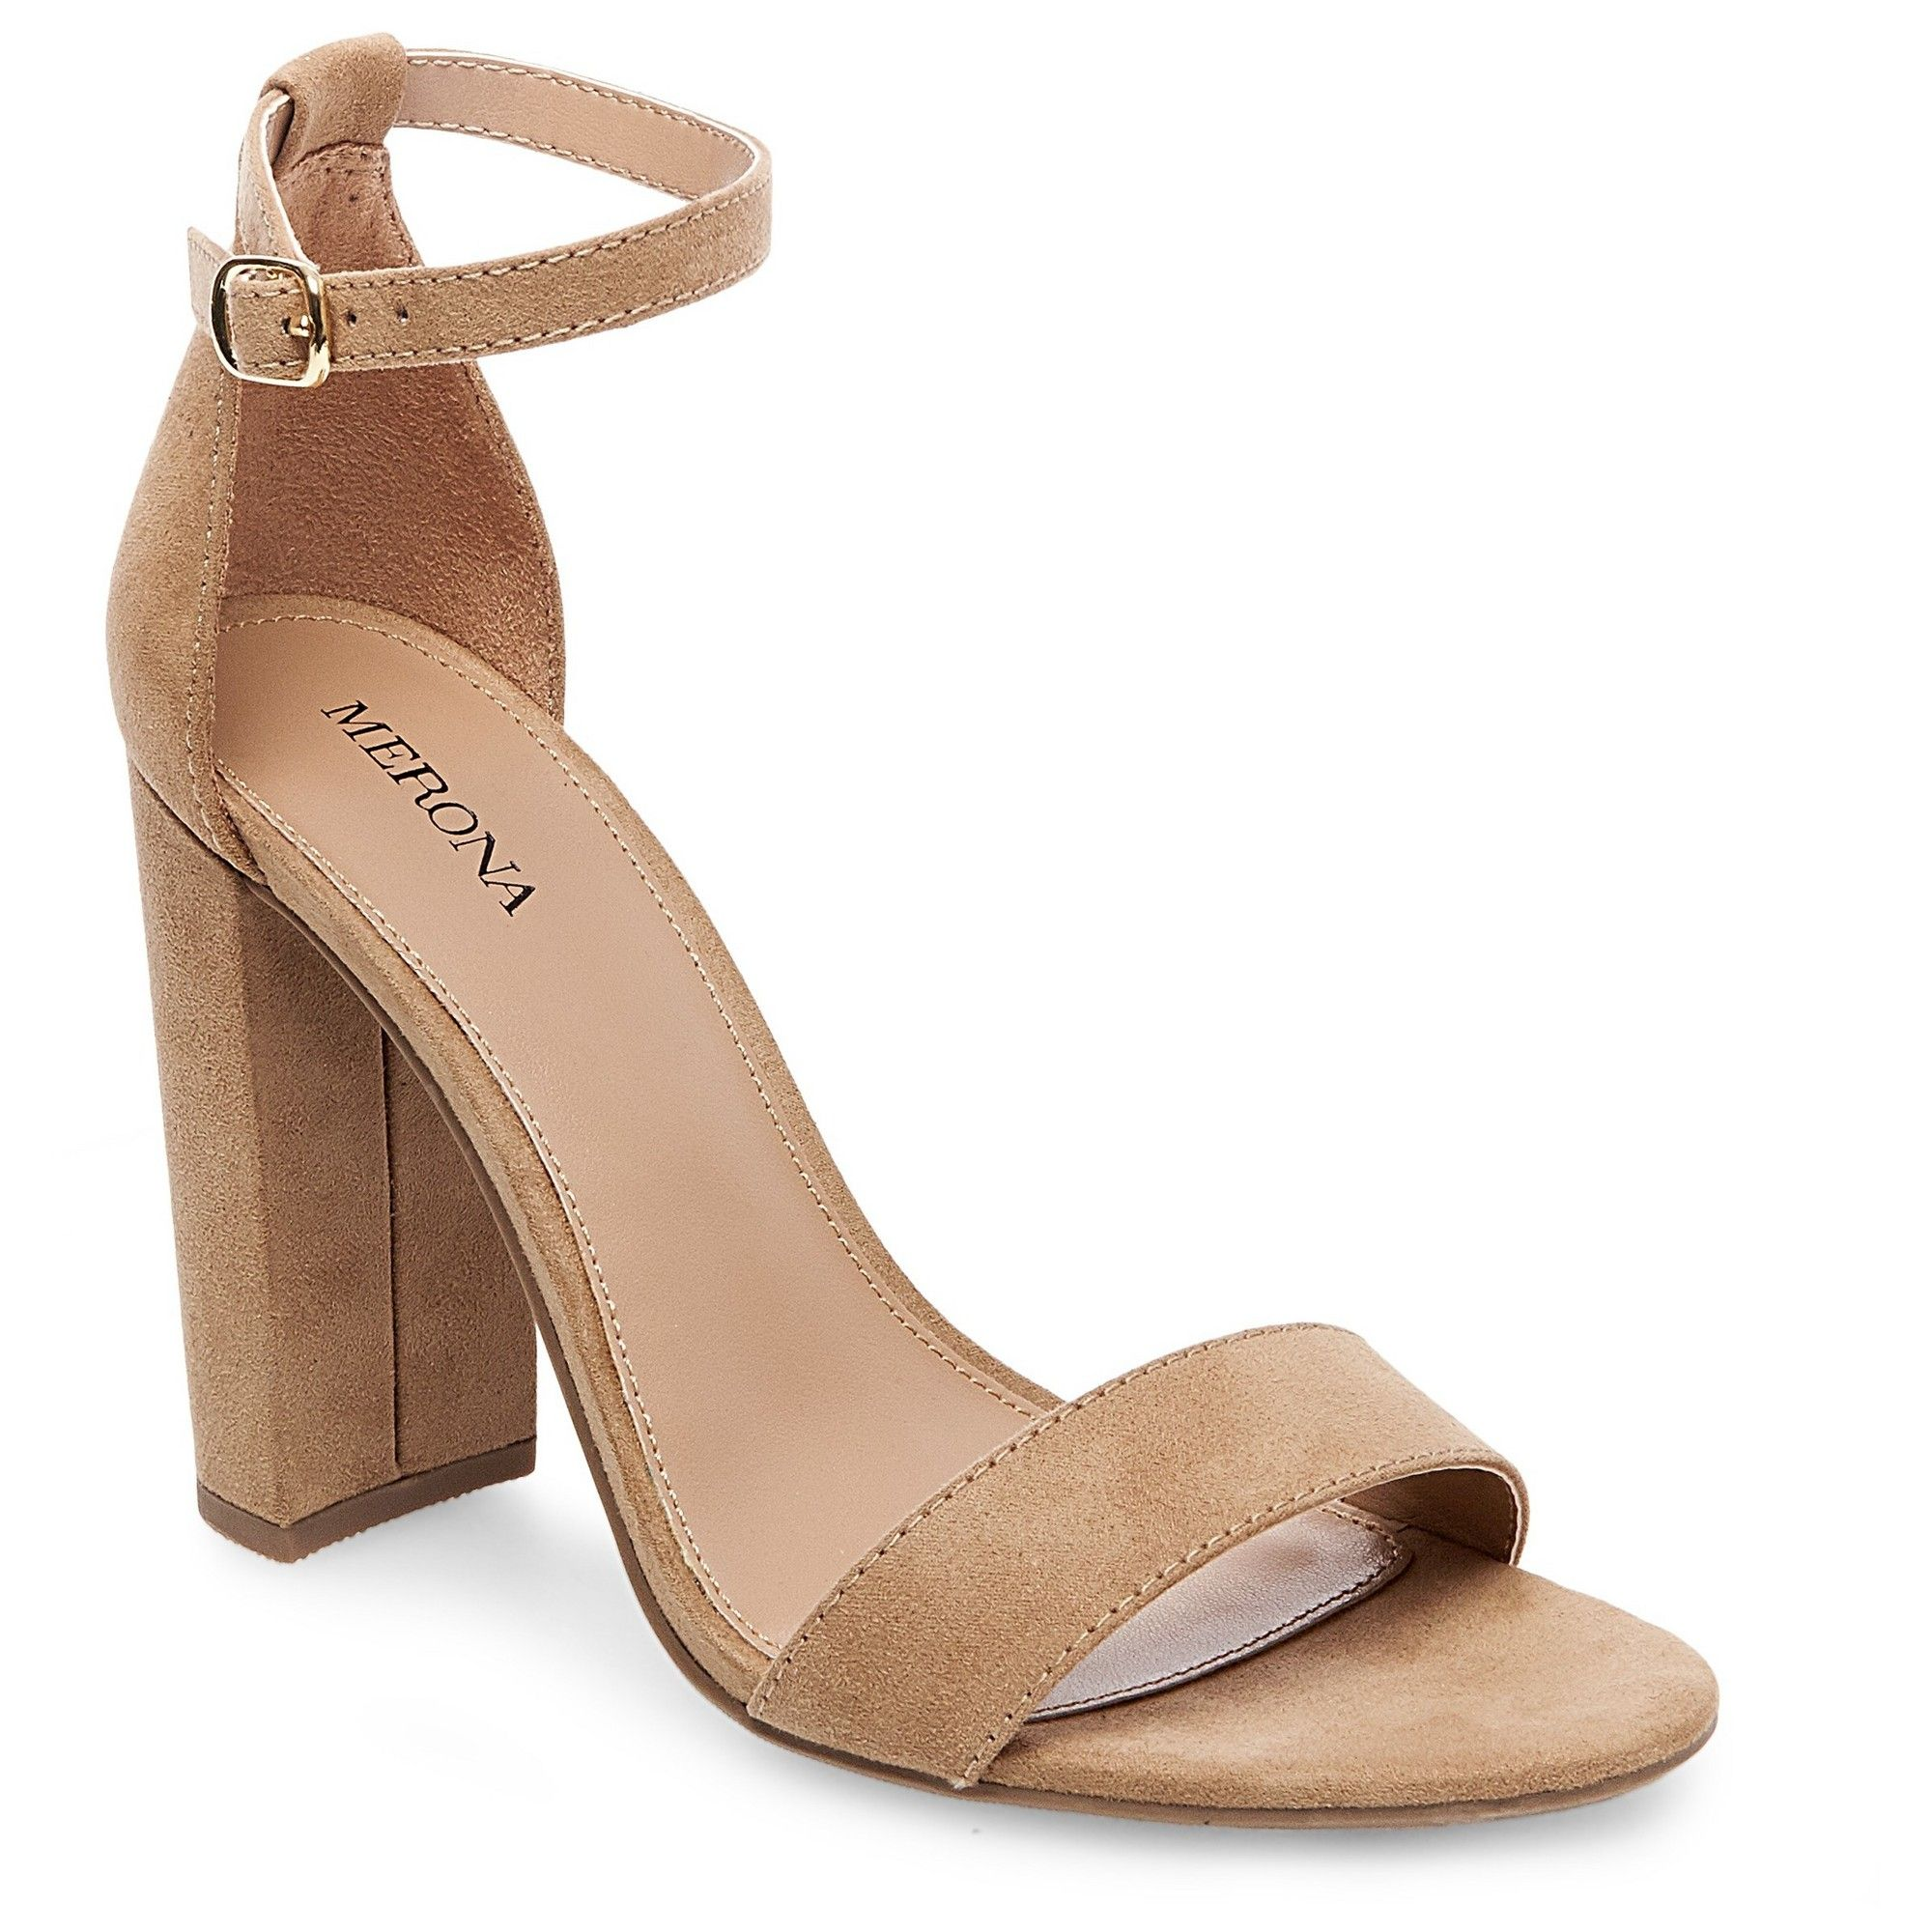 ed2d401d7ae Women s Lulu Wide Width High Block Heel Sandal Pumps with Ankle Straps - Merona  Taupe (Brown) 10